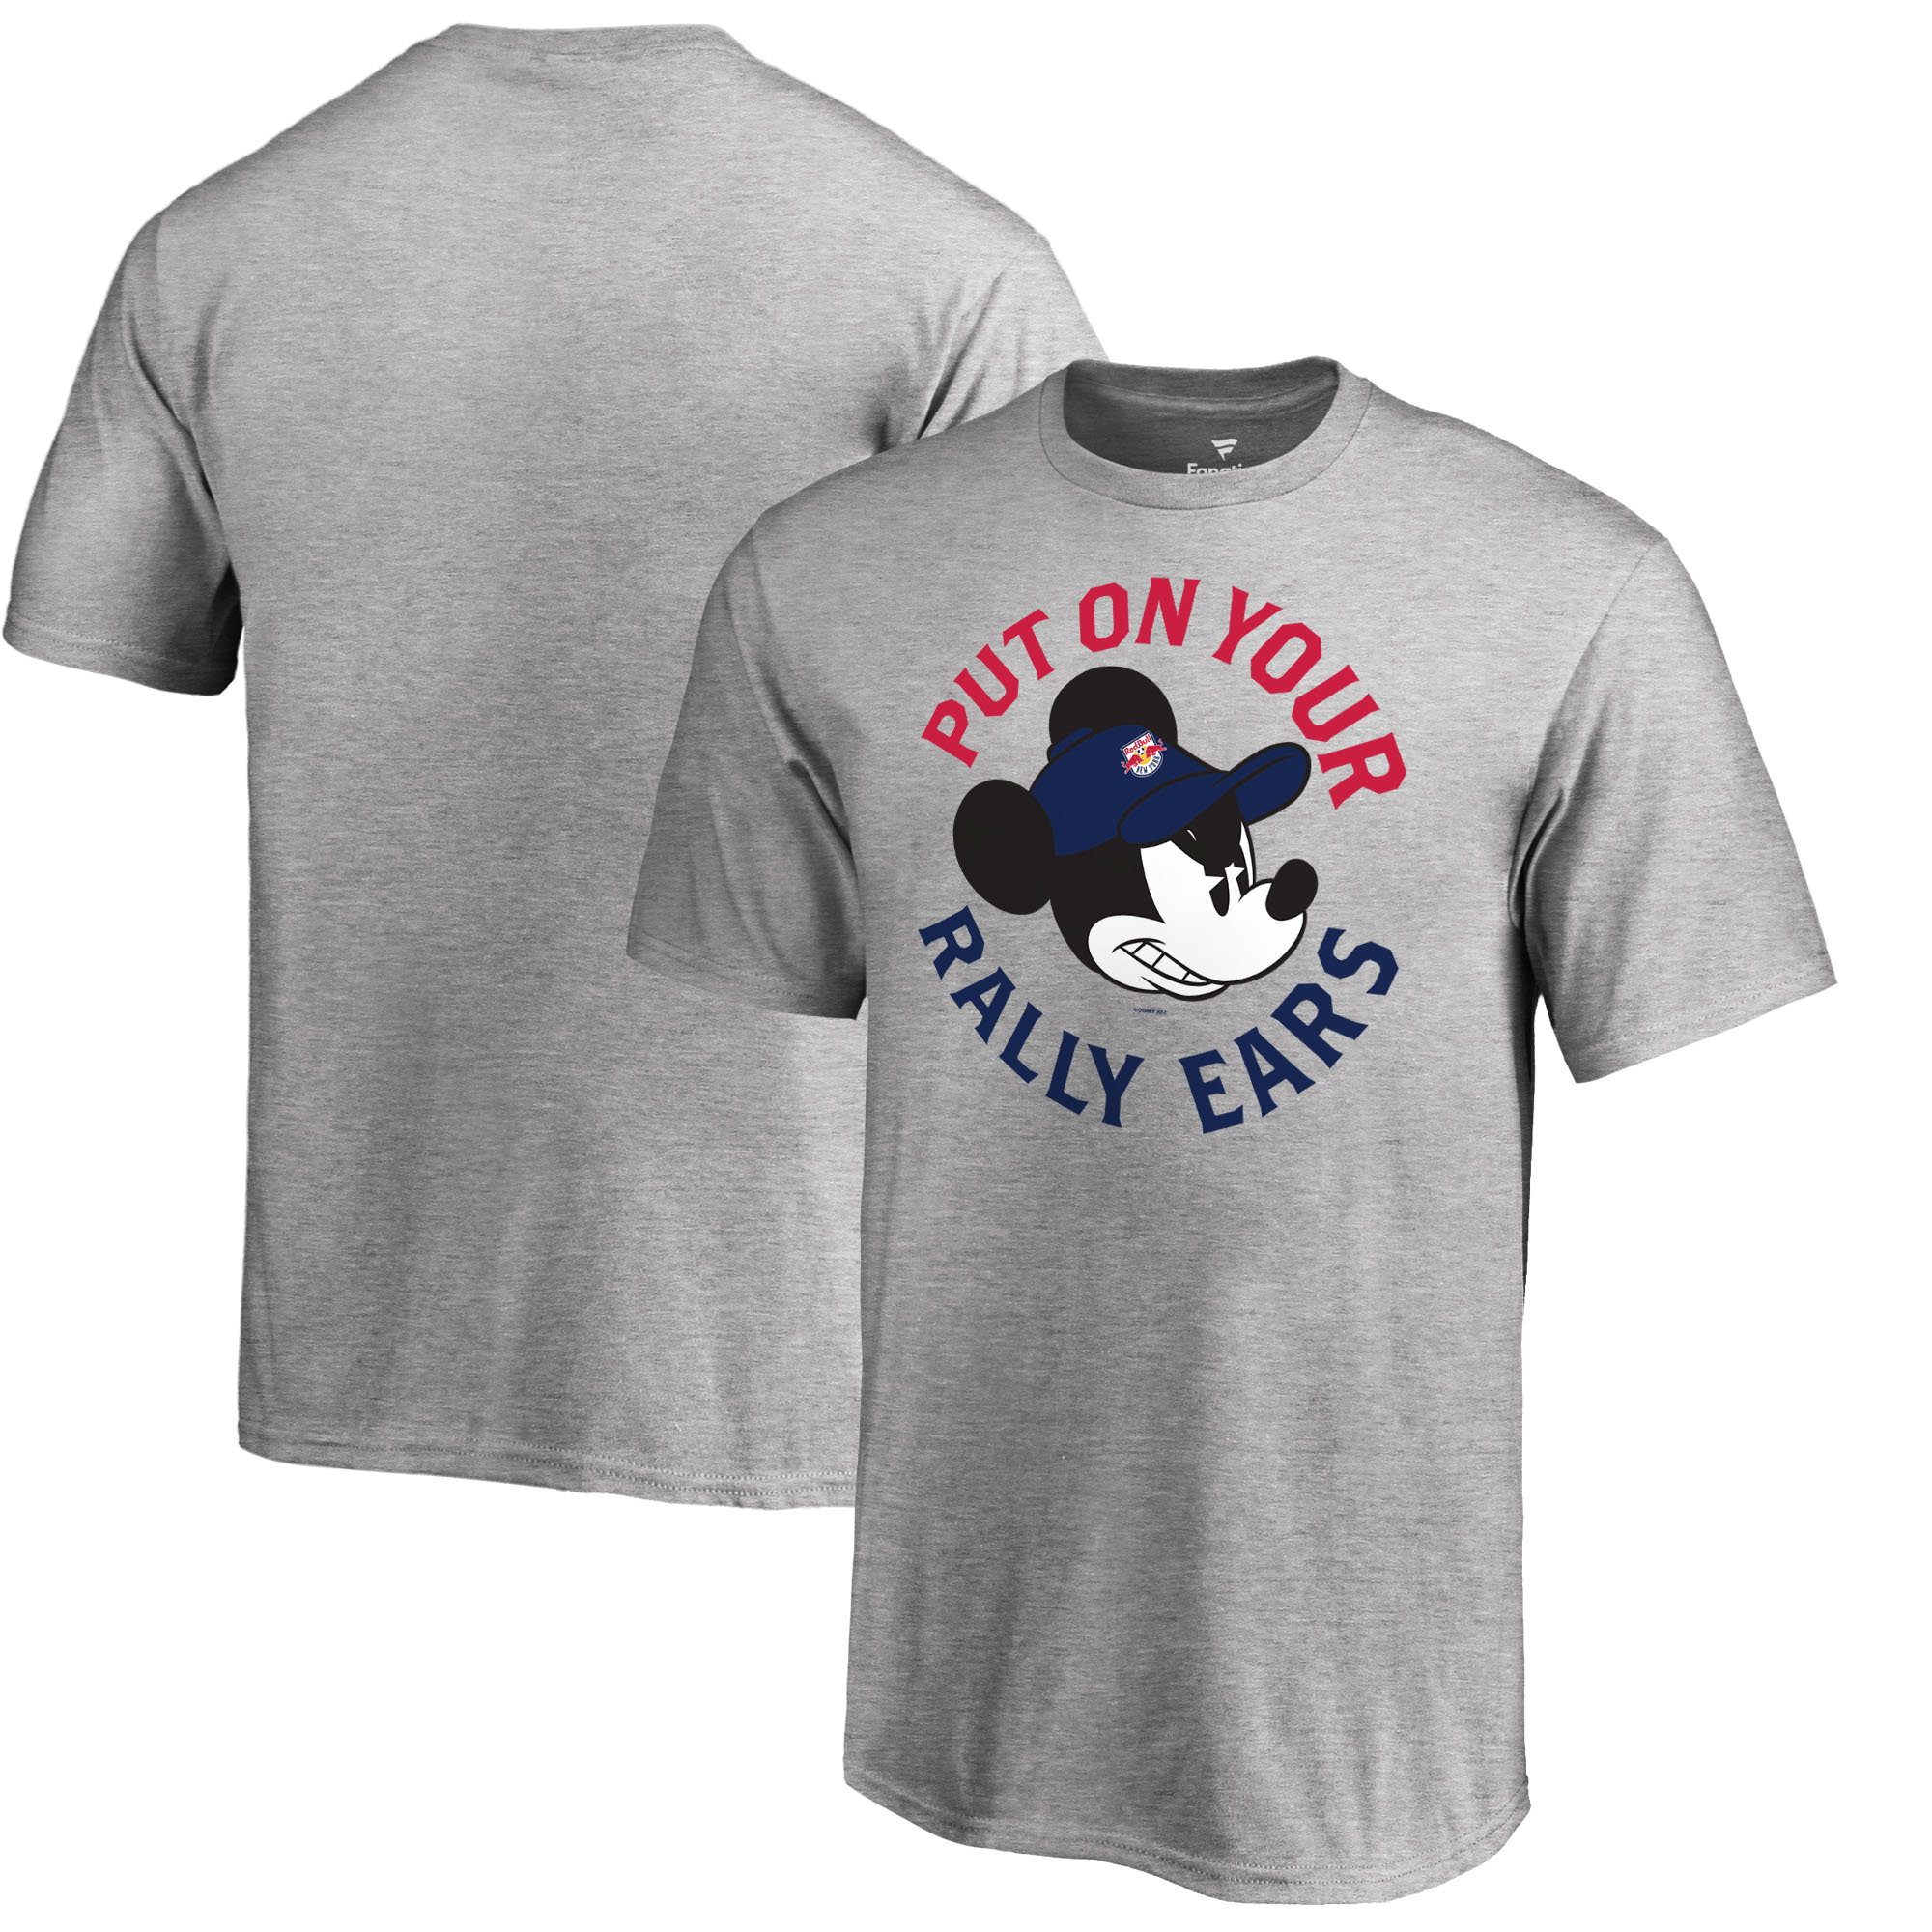 New York Red Bulls Fanatics Branded Youth Disney Rally Ears T-Shirt - Heathered Gray